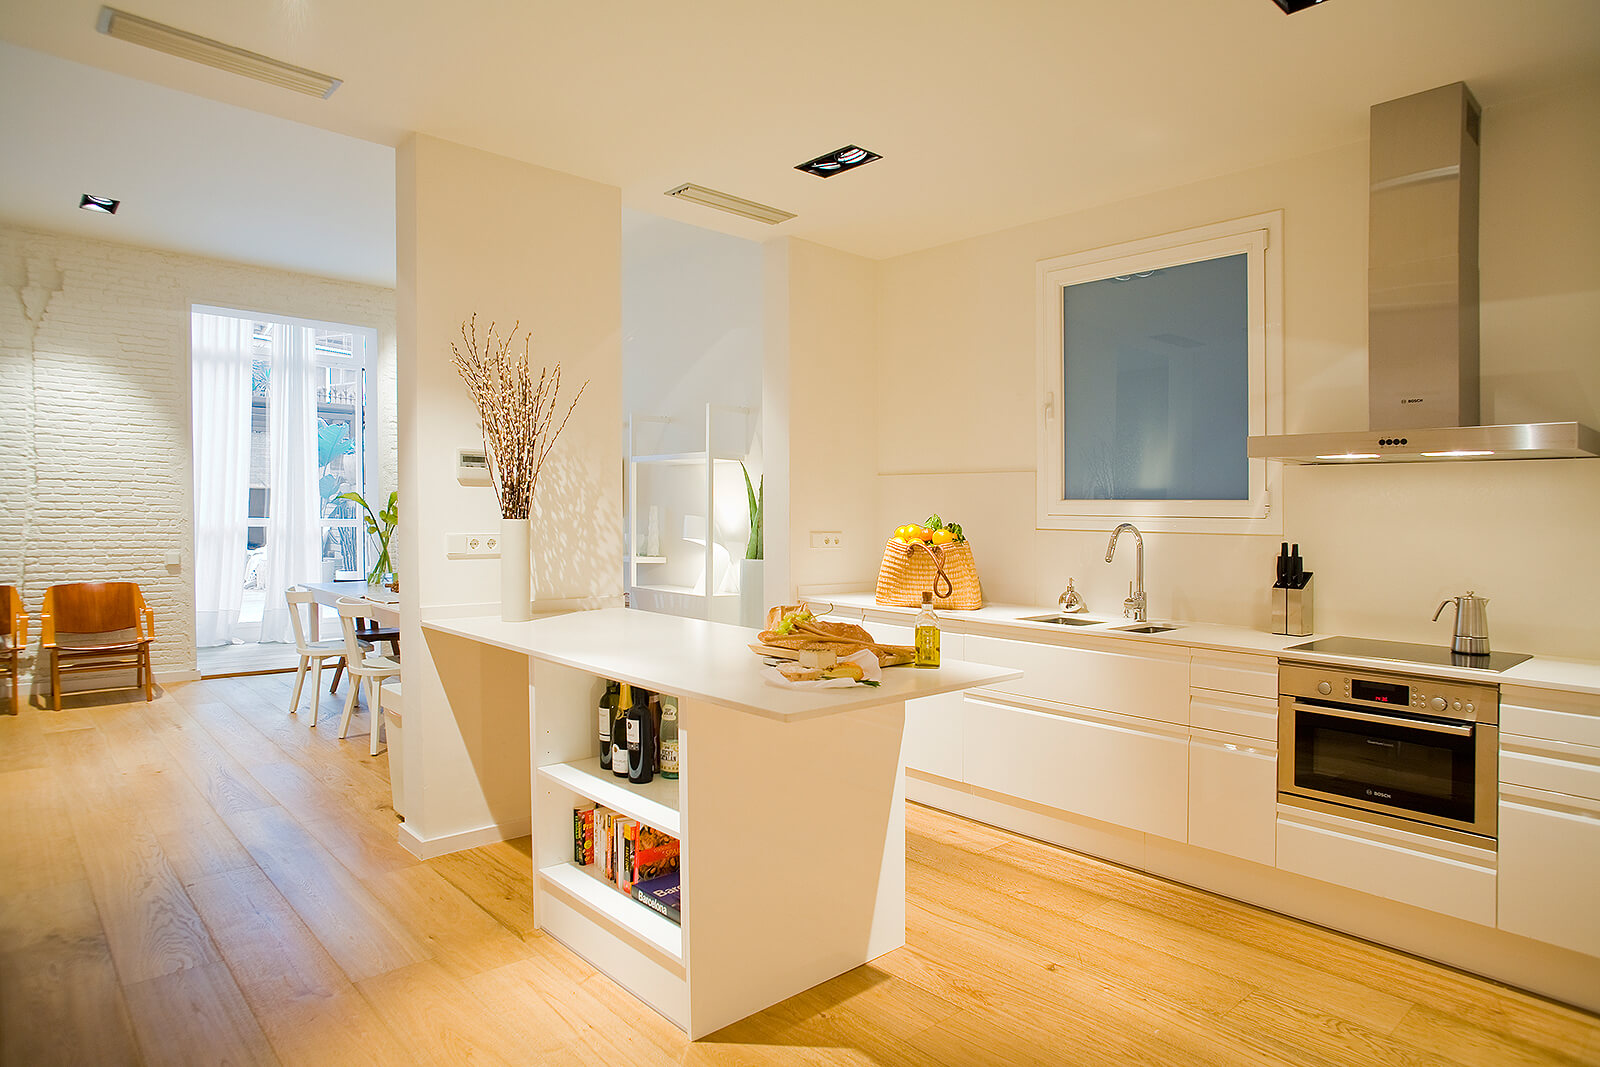 Grand Superior Suite, Barcelona, Spain | vacation home rentals